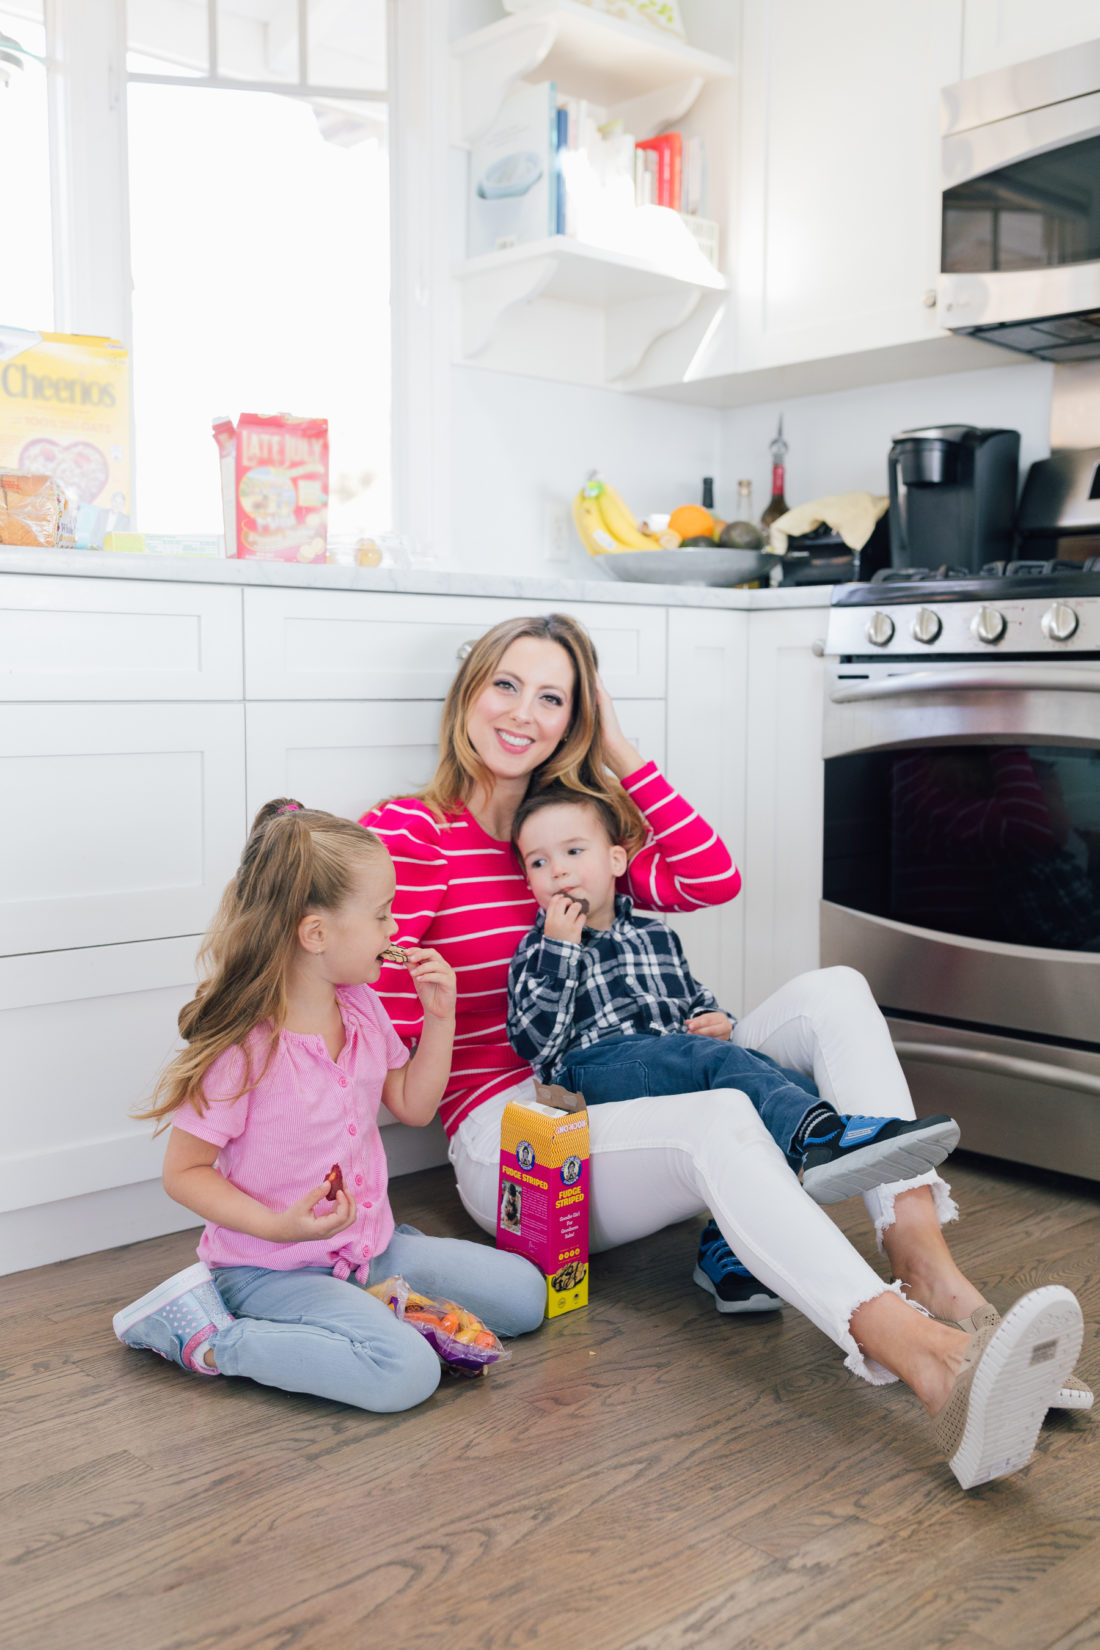 Eva Amurri Martino of Happily Eva After wears Skechers wears Sepulvada Blvd a la Mode Slip-On in the kitchen with her kids Marlowe and Major